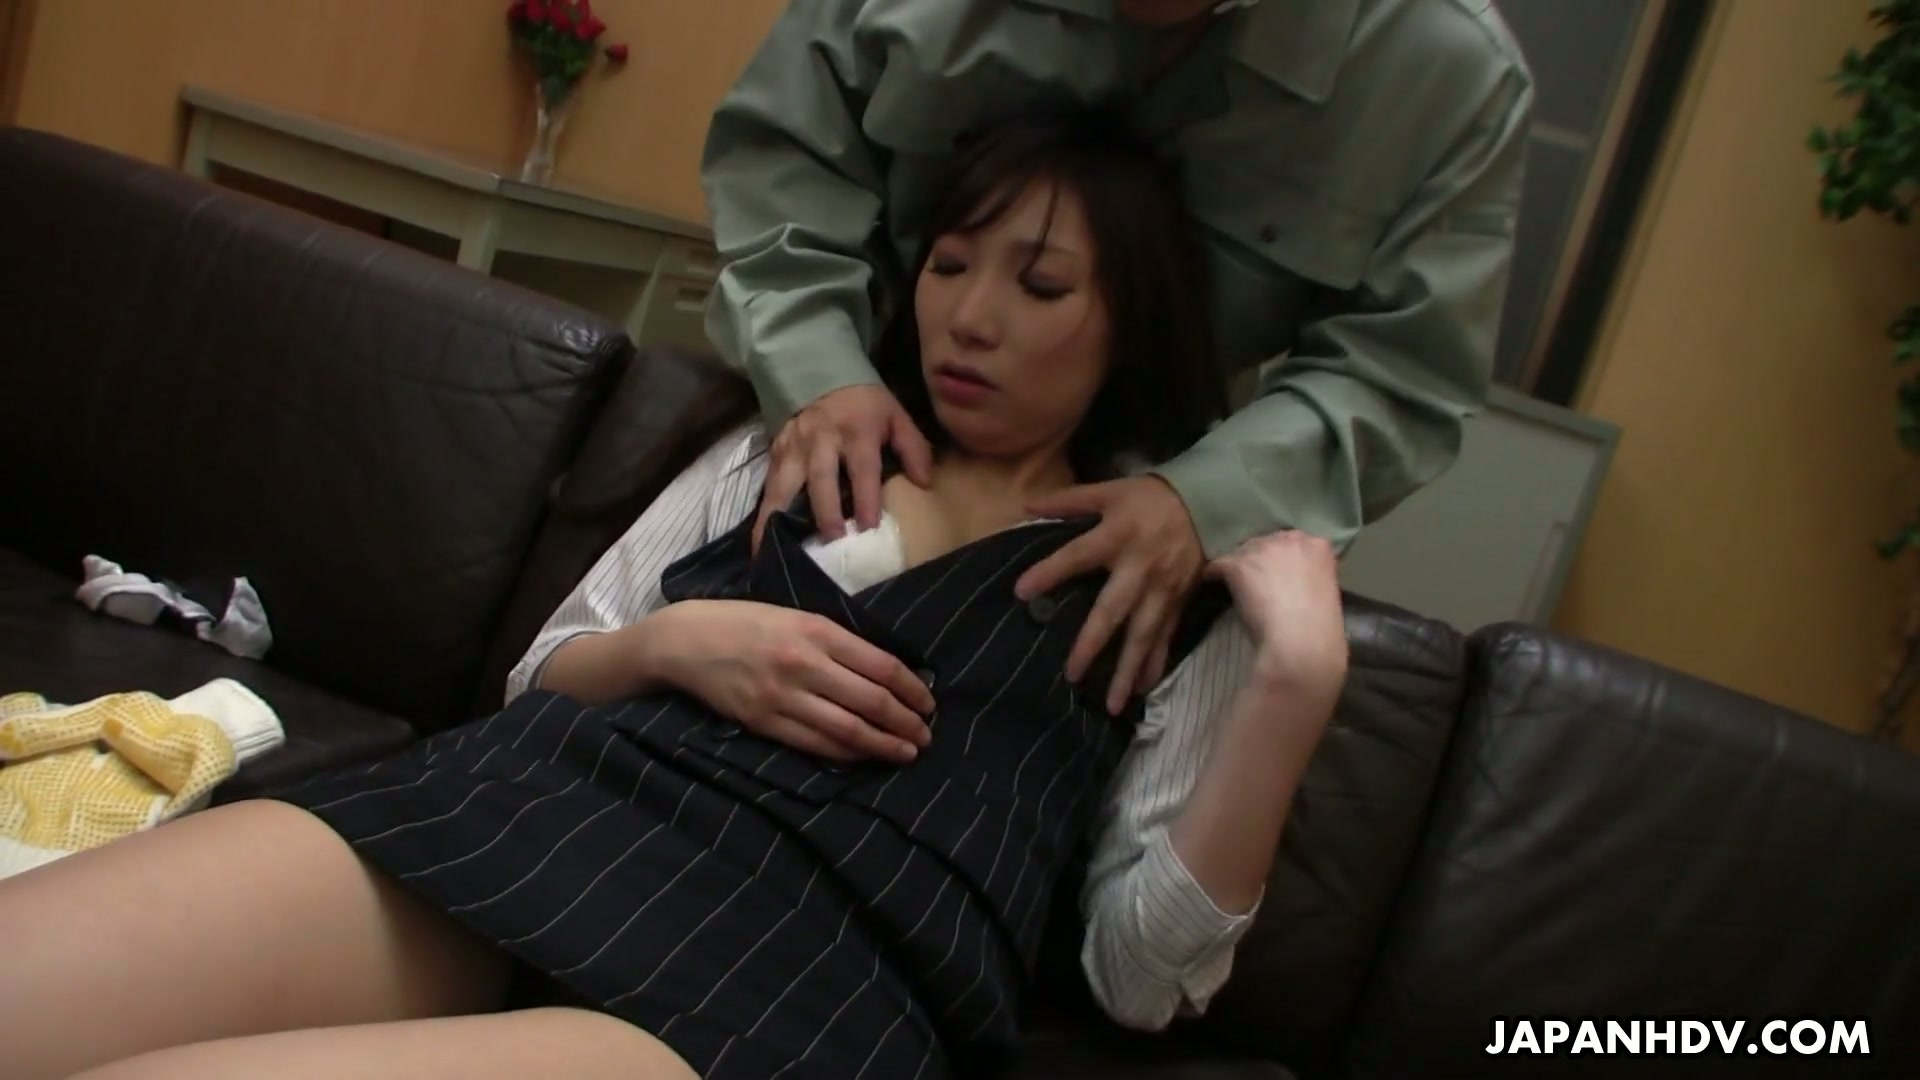 orgasm through masterbation